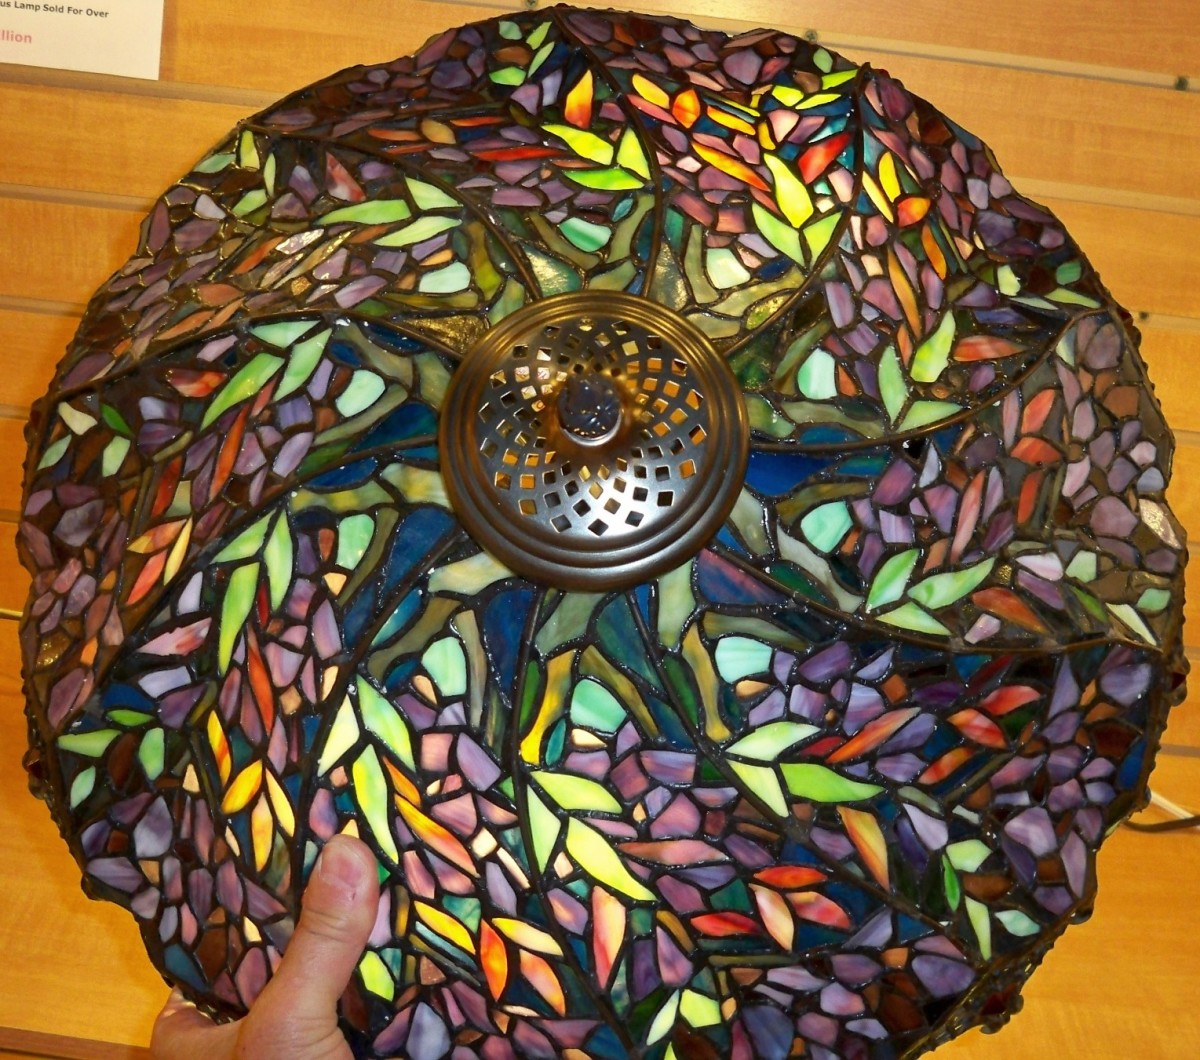 Tiffany style lamp with green blue and a mosaic of colors